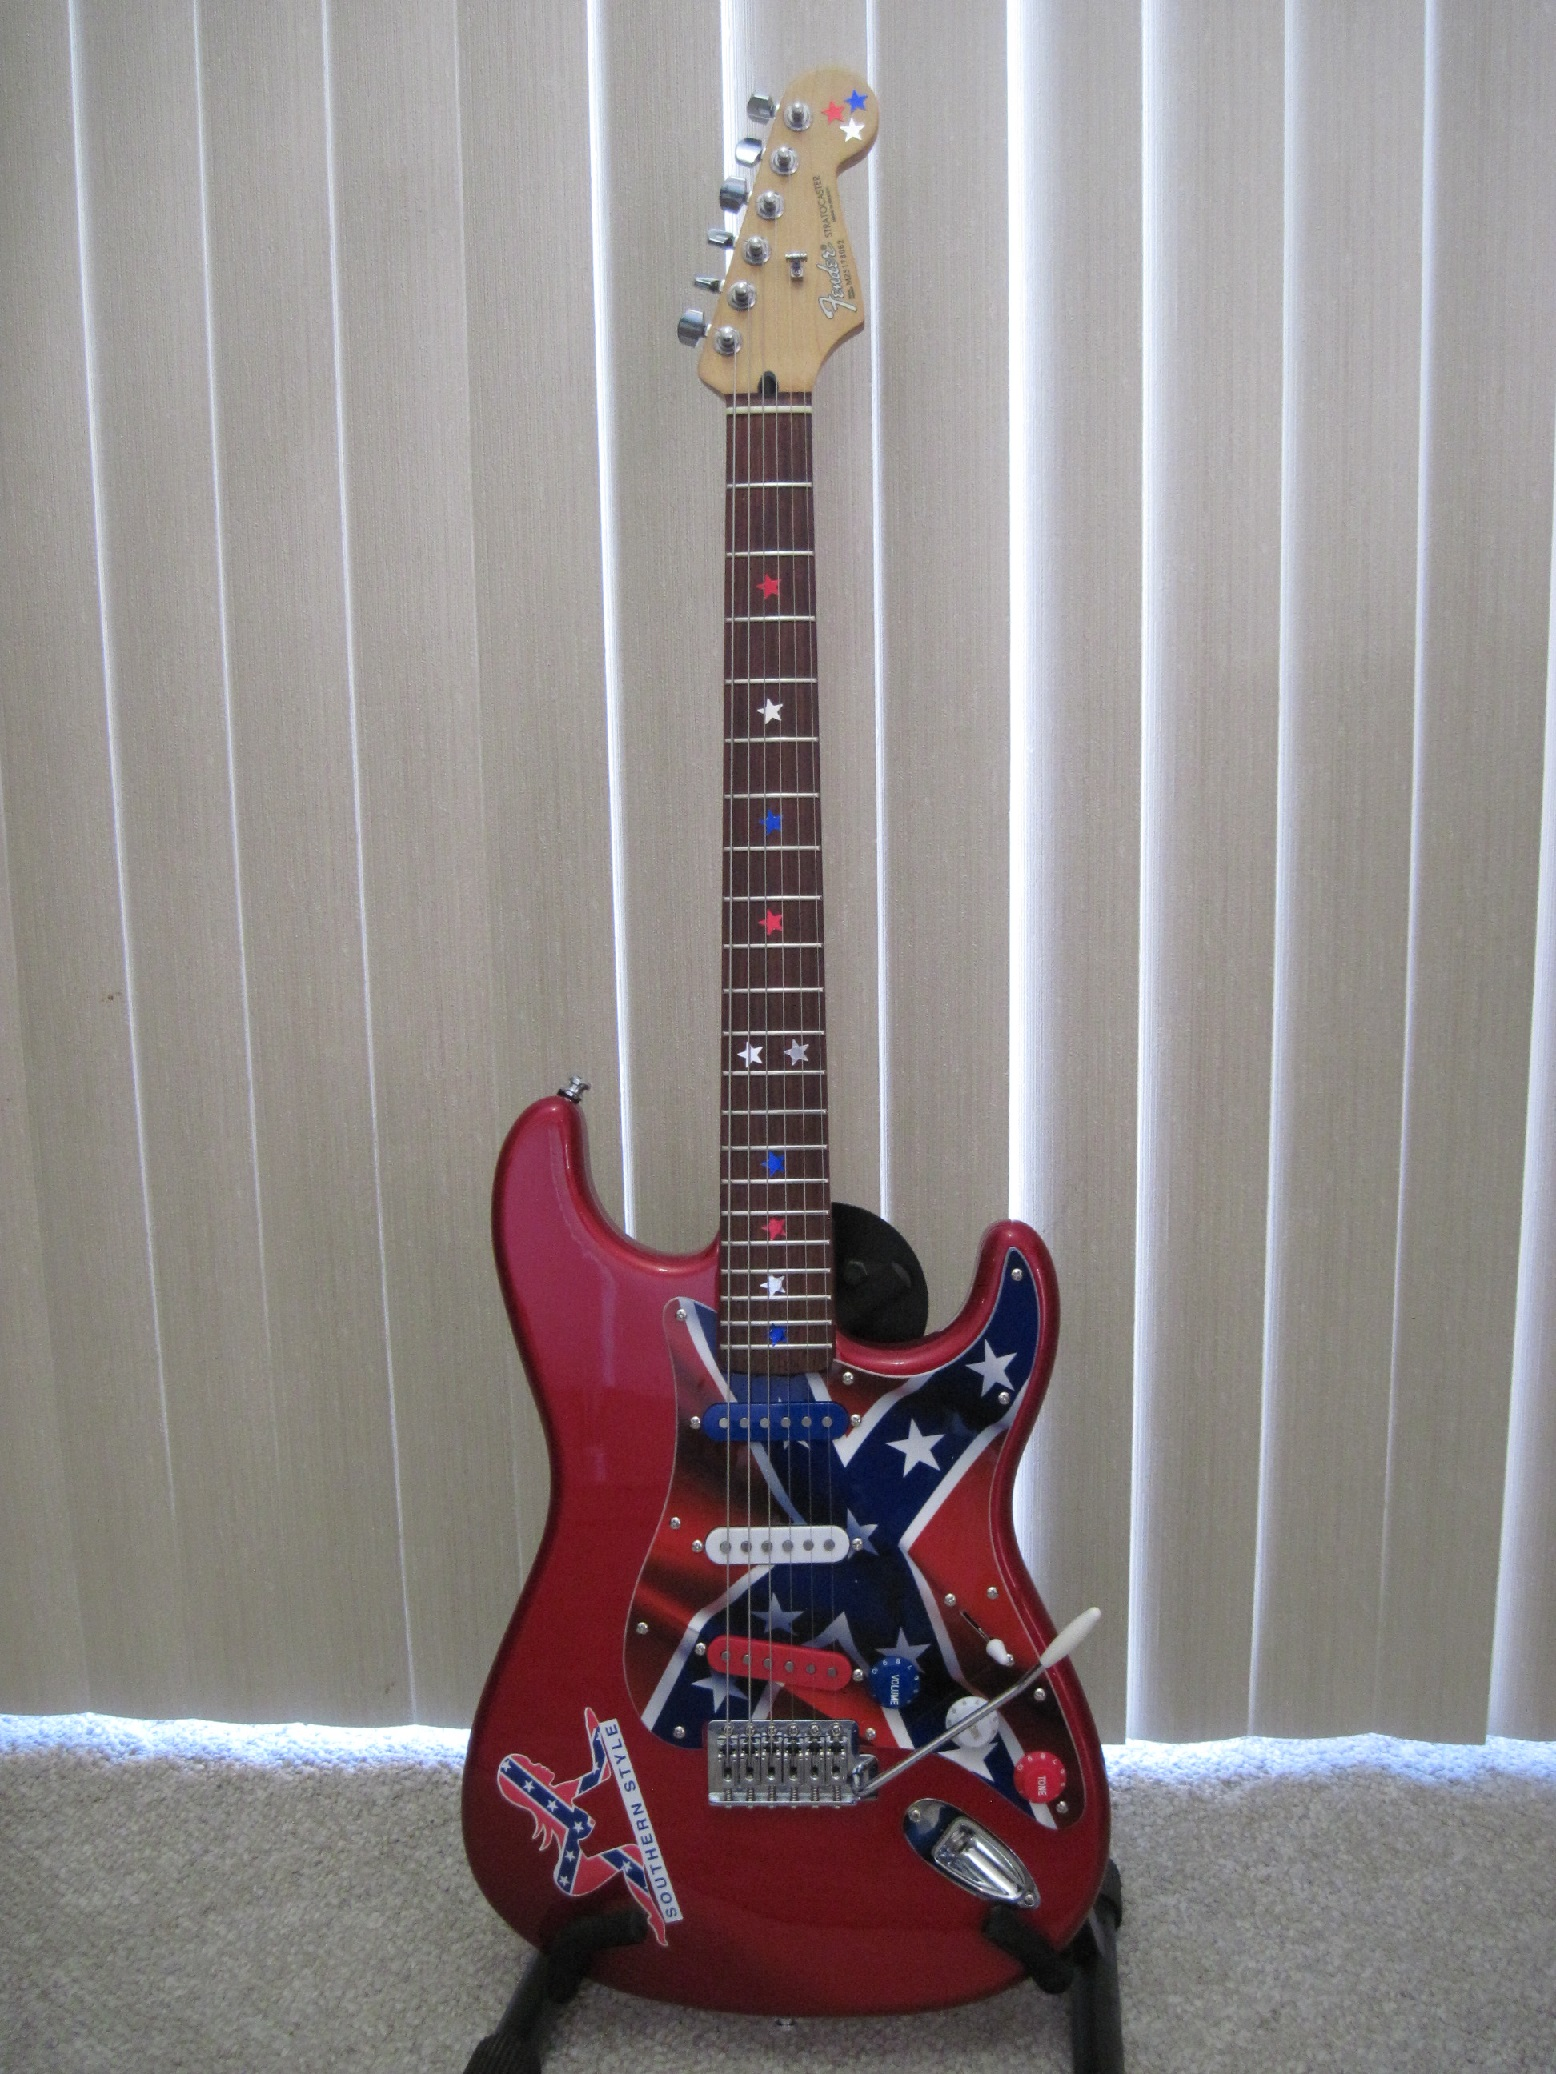 2005 Fender Stratocaster MIM Customized